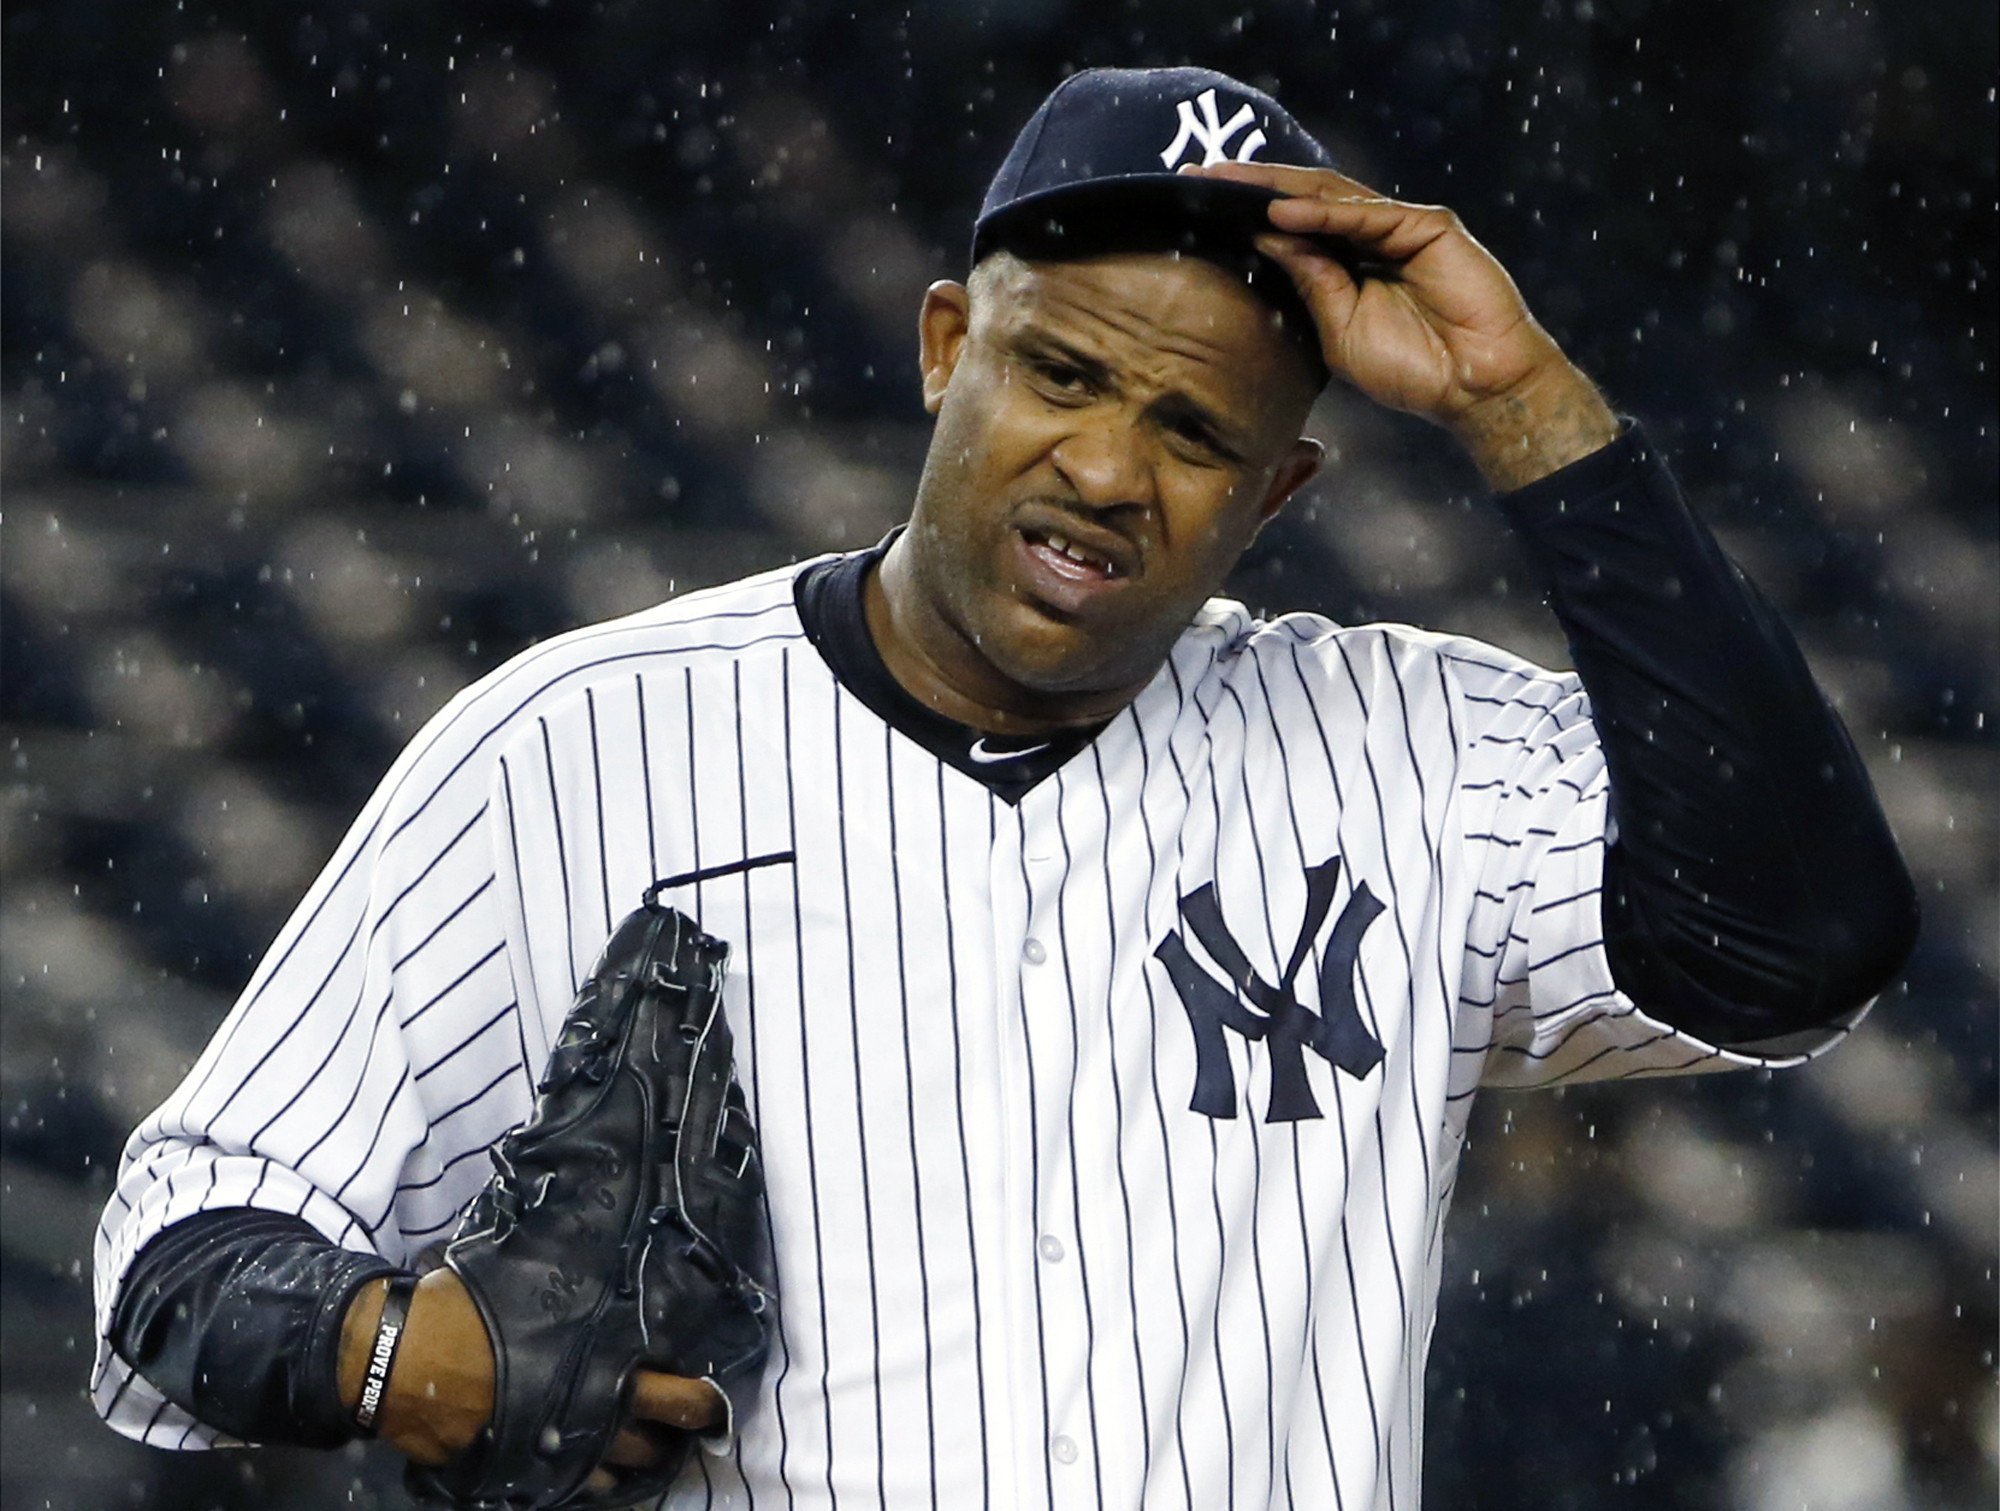 """FILE - In this Oct. 1, 2015, file photo, New York Yankees starting pitcher CC Sabathia (52) struggles with his cap in the rain during the first inning of a baseball game against the Boston Red Sox in New York. Sabathia says he had """"no other option"""" than t"""